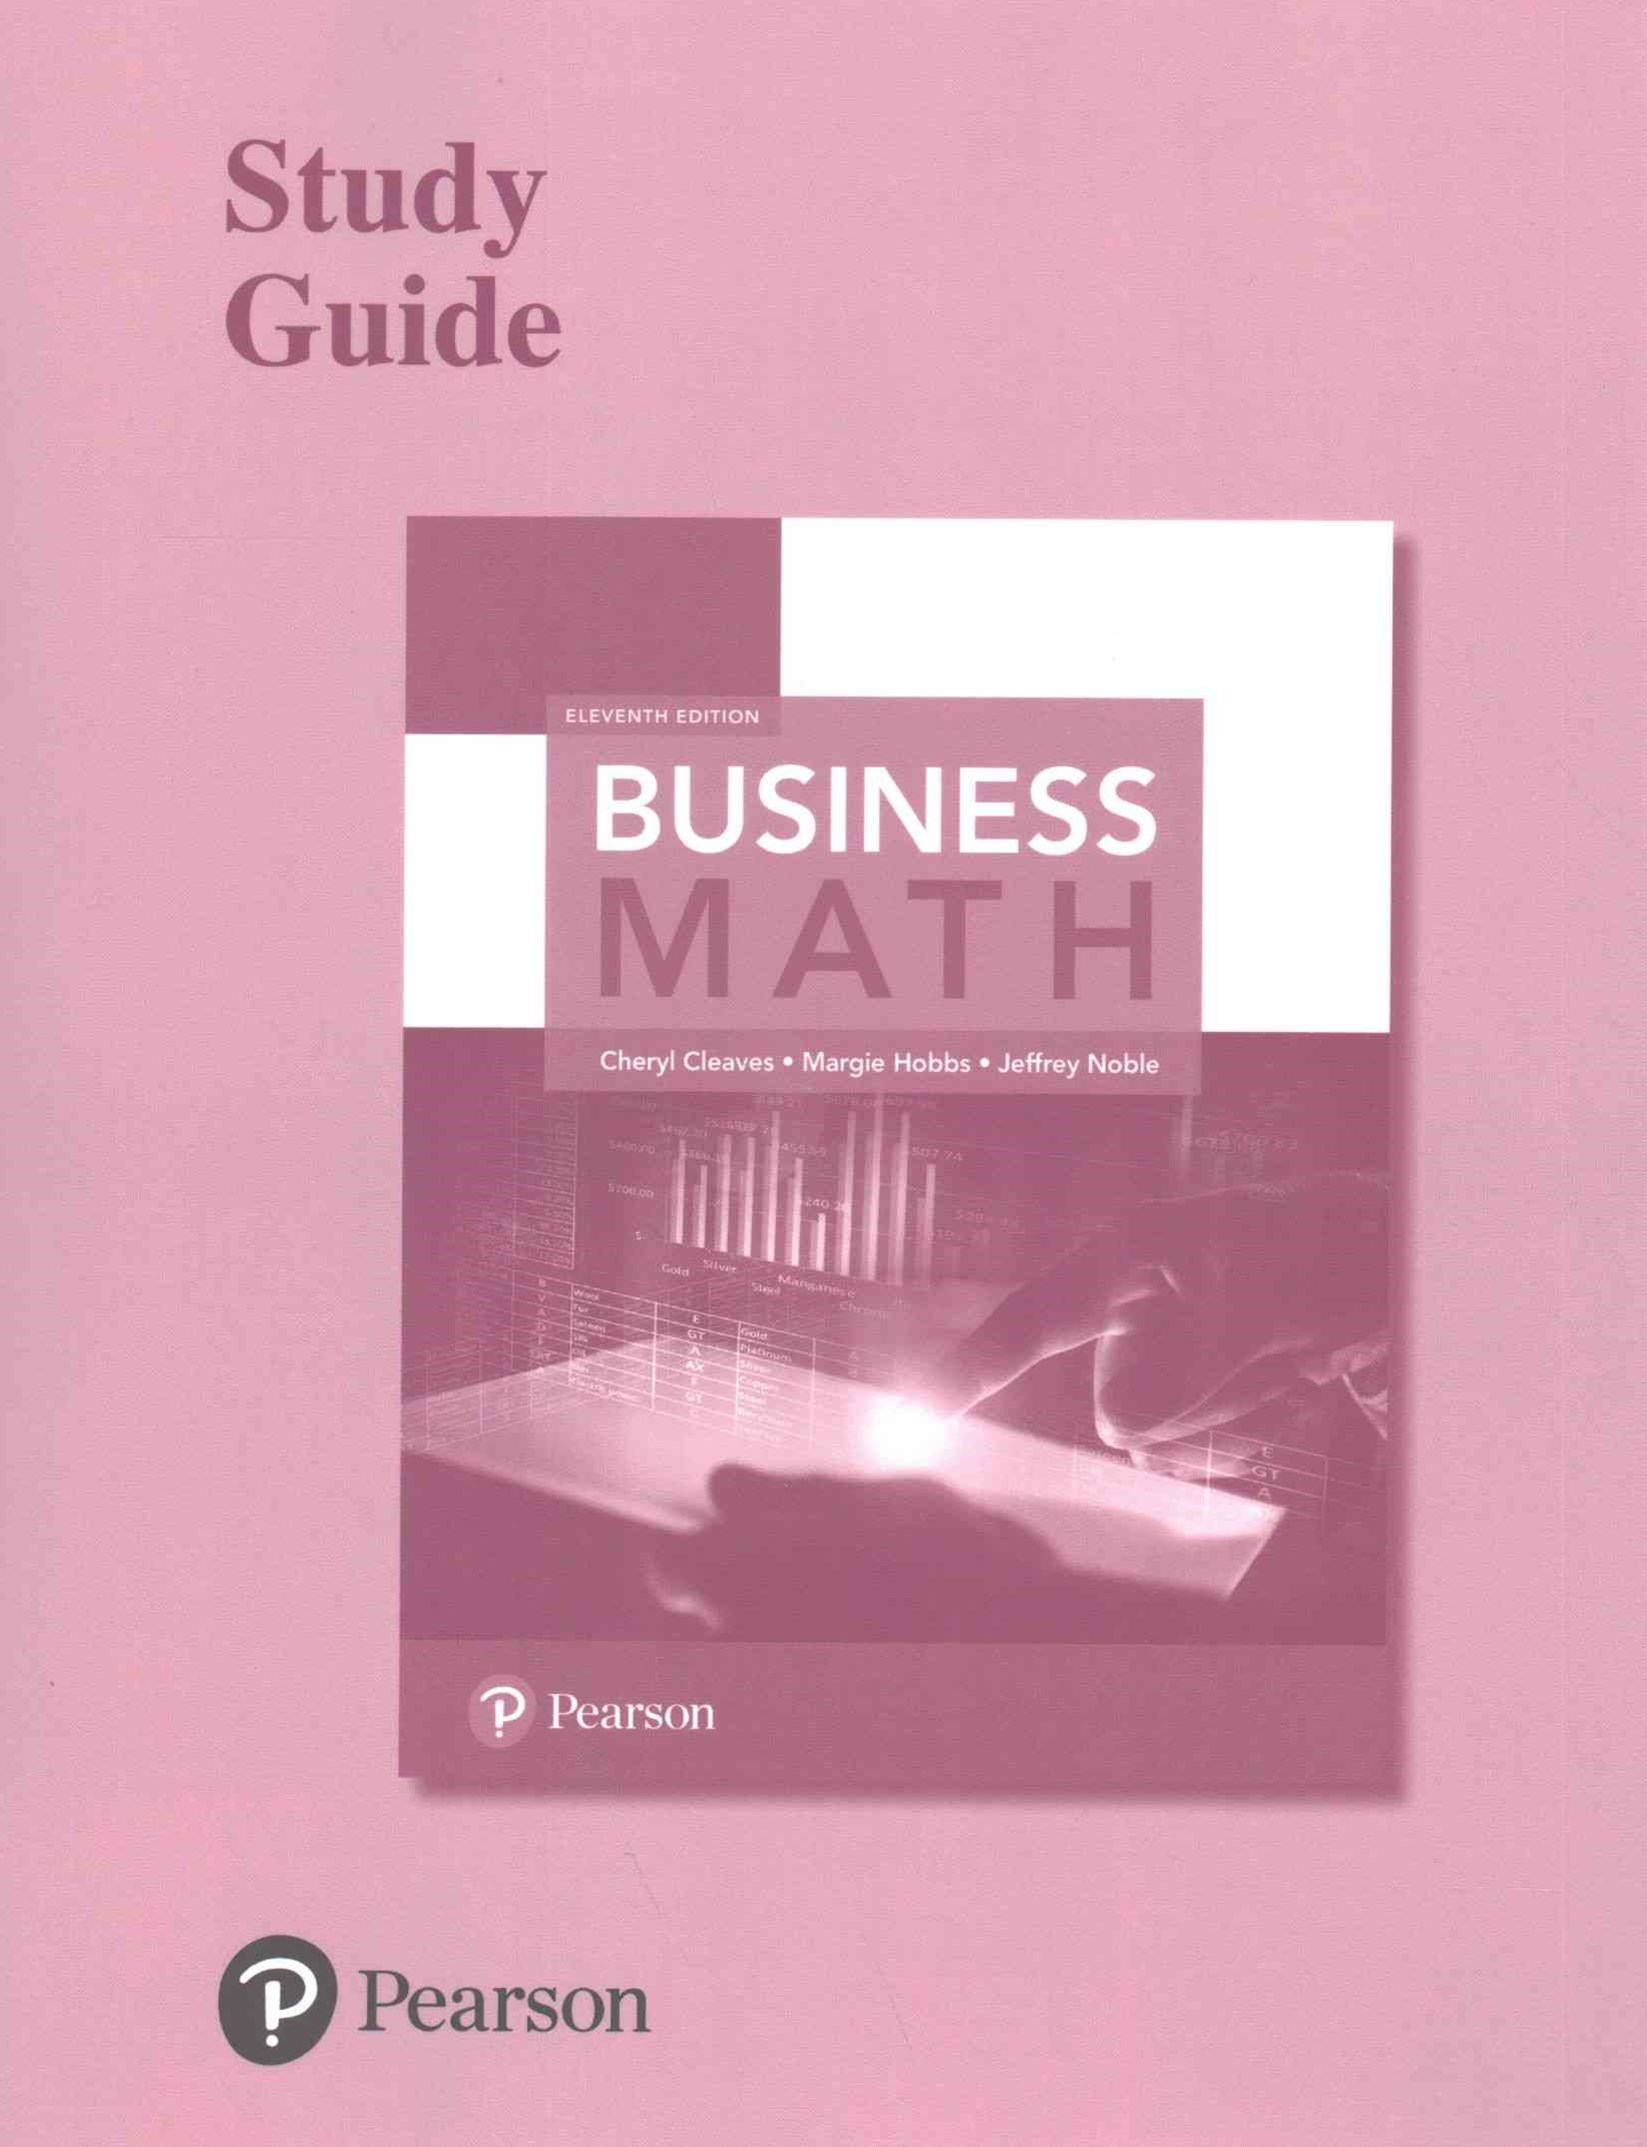 Study Guide for Business Math